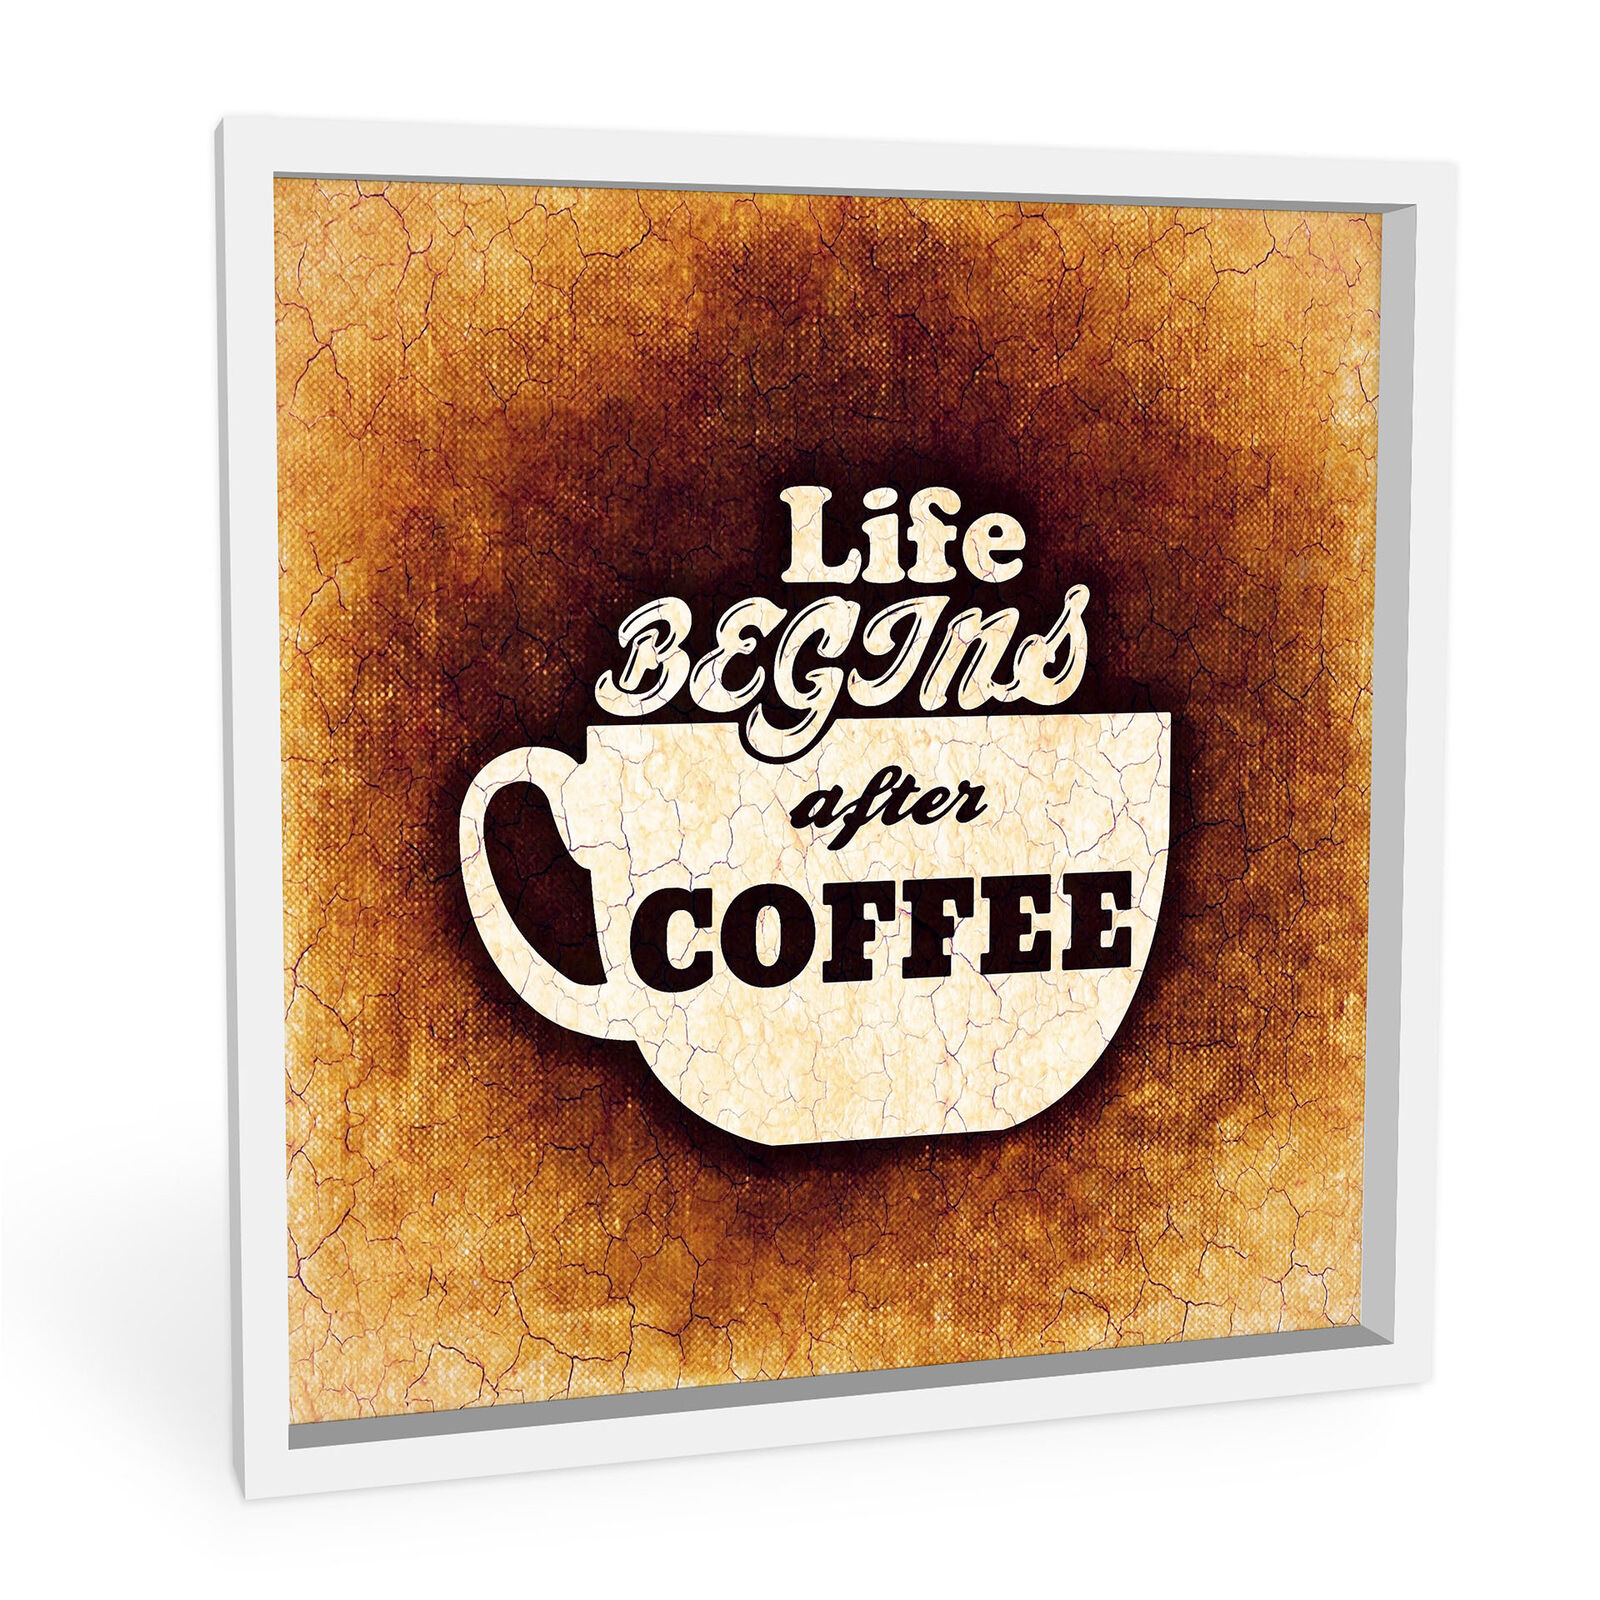 La fresque Coffee LIFE BEGINS after Coffee fresque 02 e8b12b